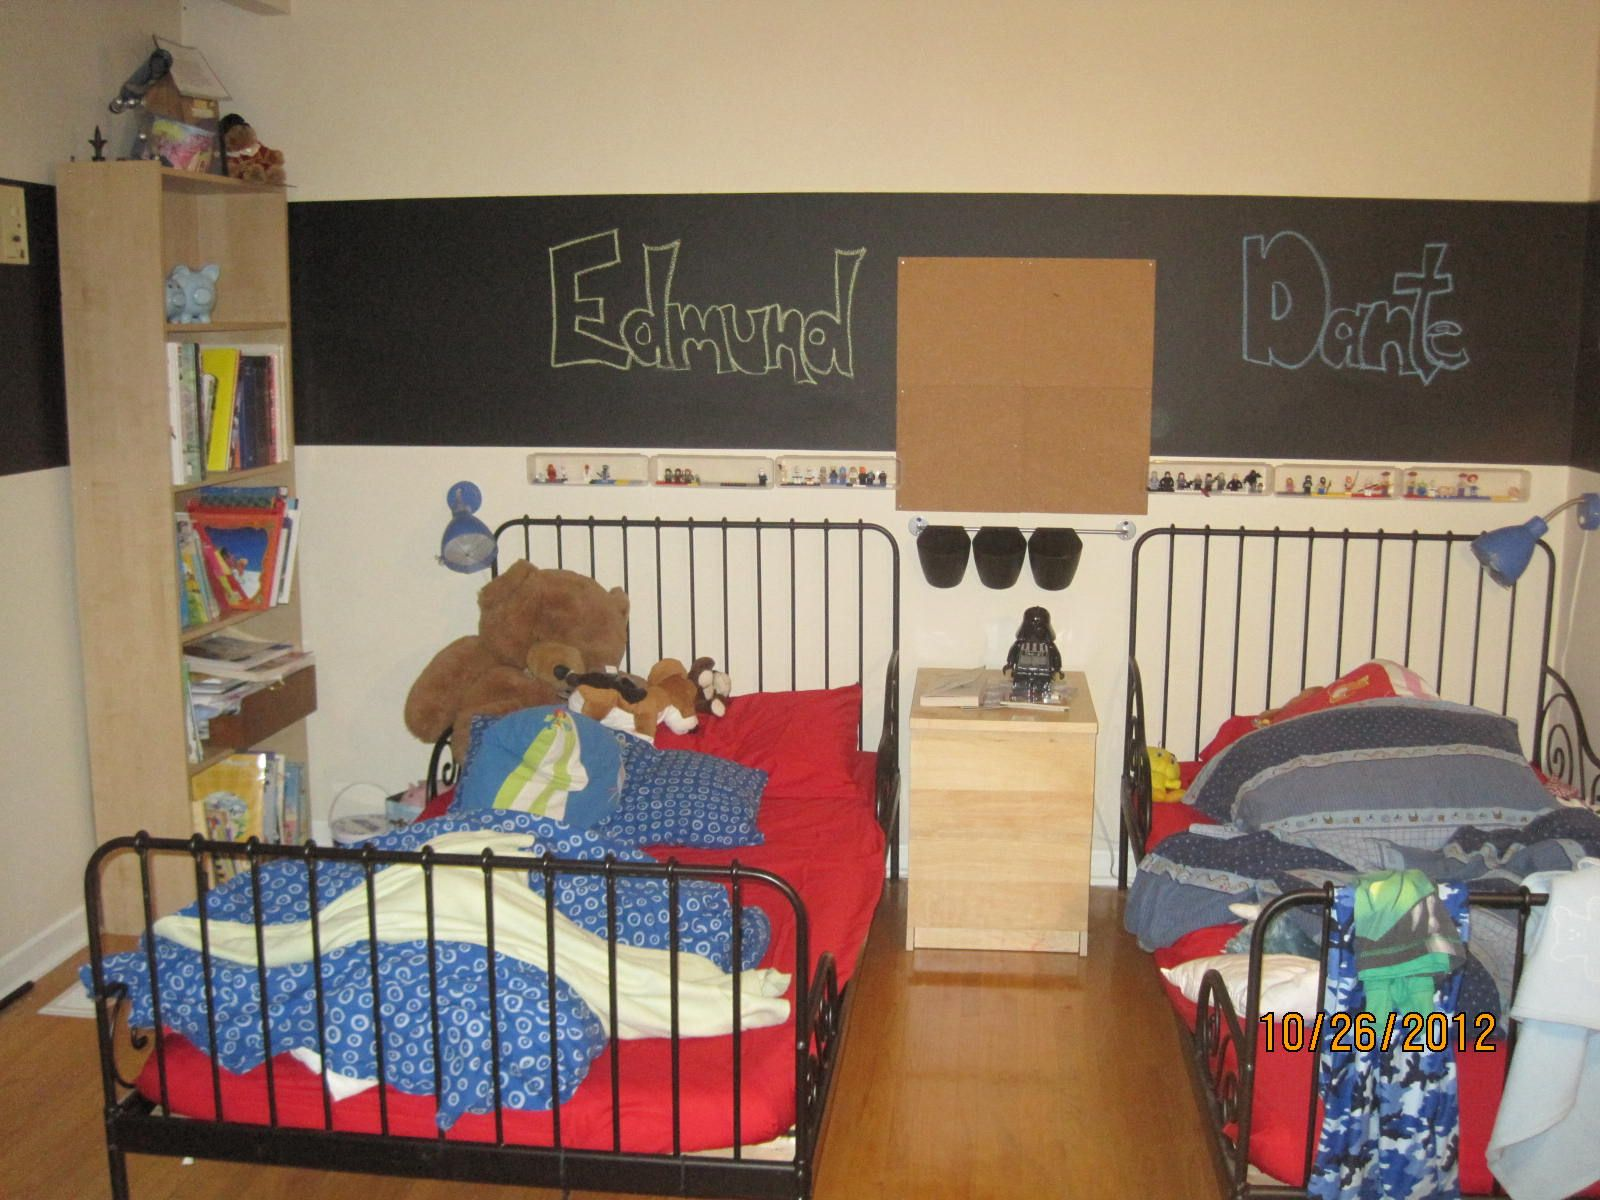 Homemade chalkboard paint (1/2 gallon paint to 1 cup dry